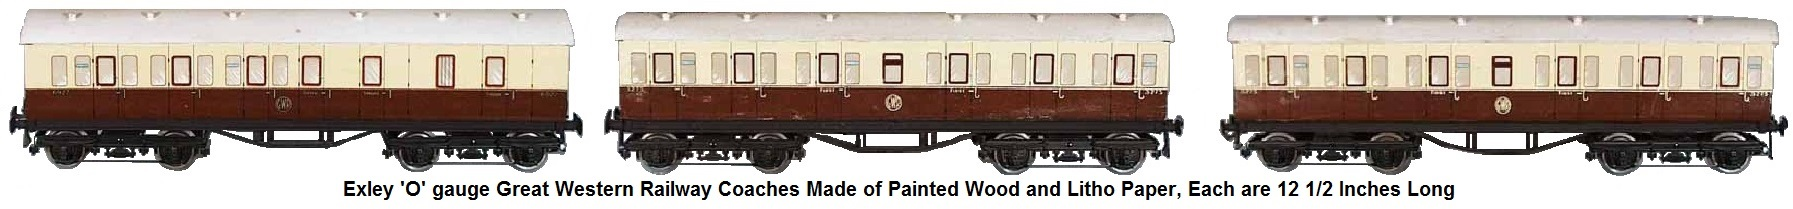 Exley Great Western Railway Coaches 'O' gauge, painted wood & litho paper, each are 12 1/2 inches long